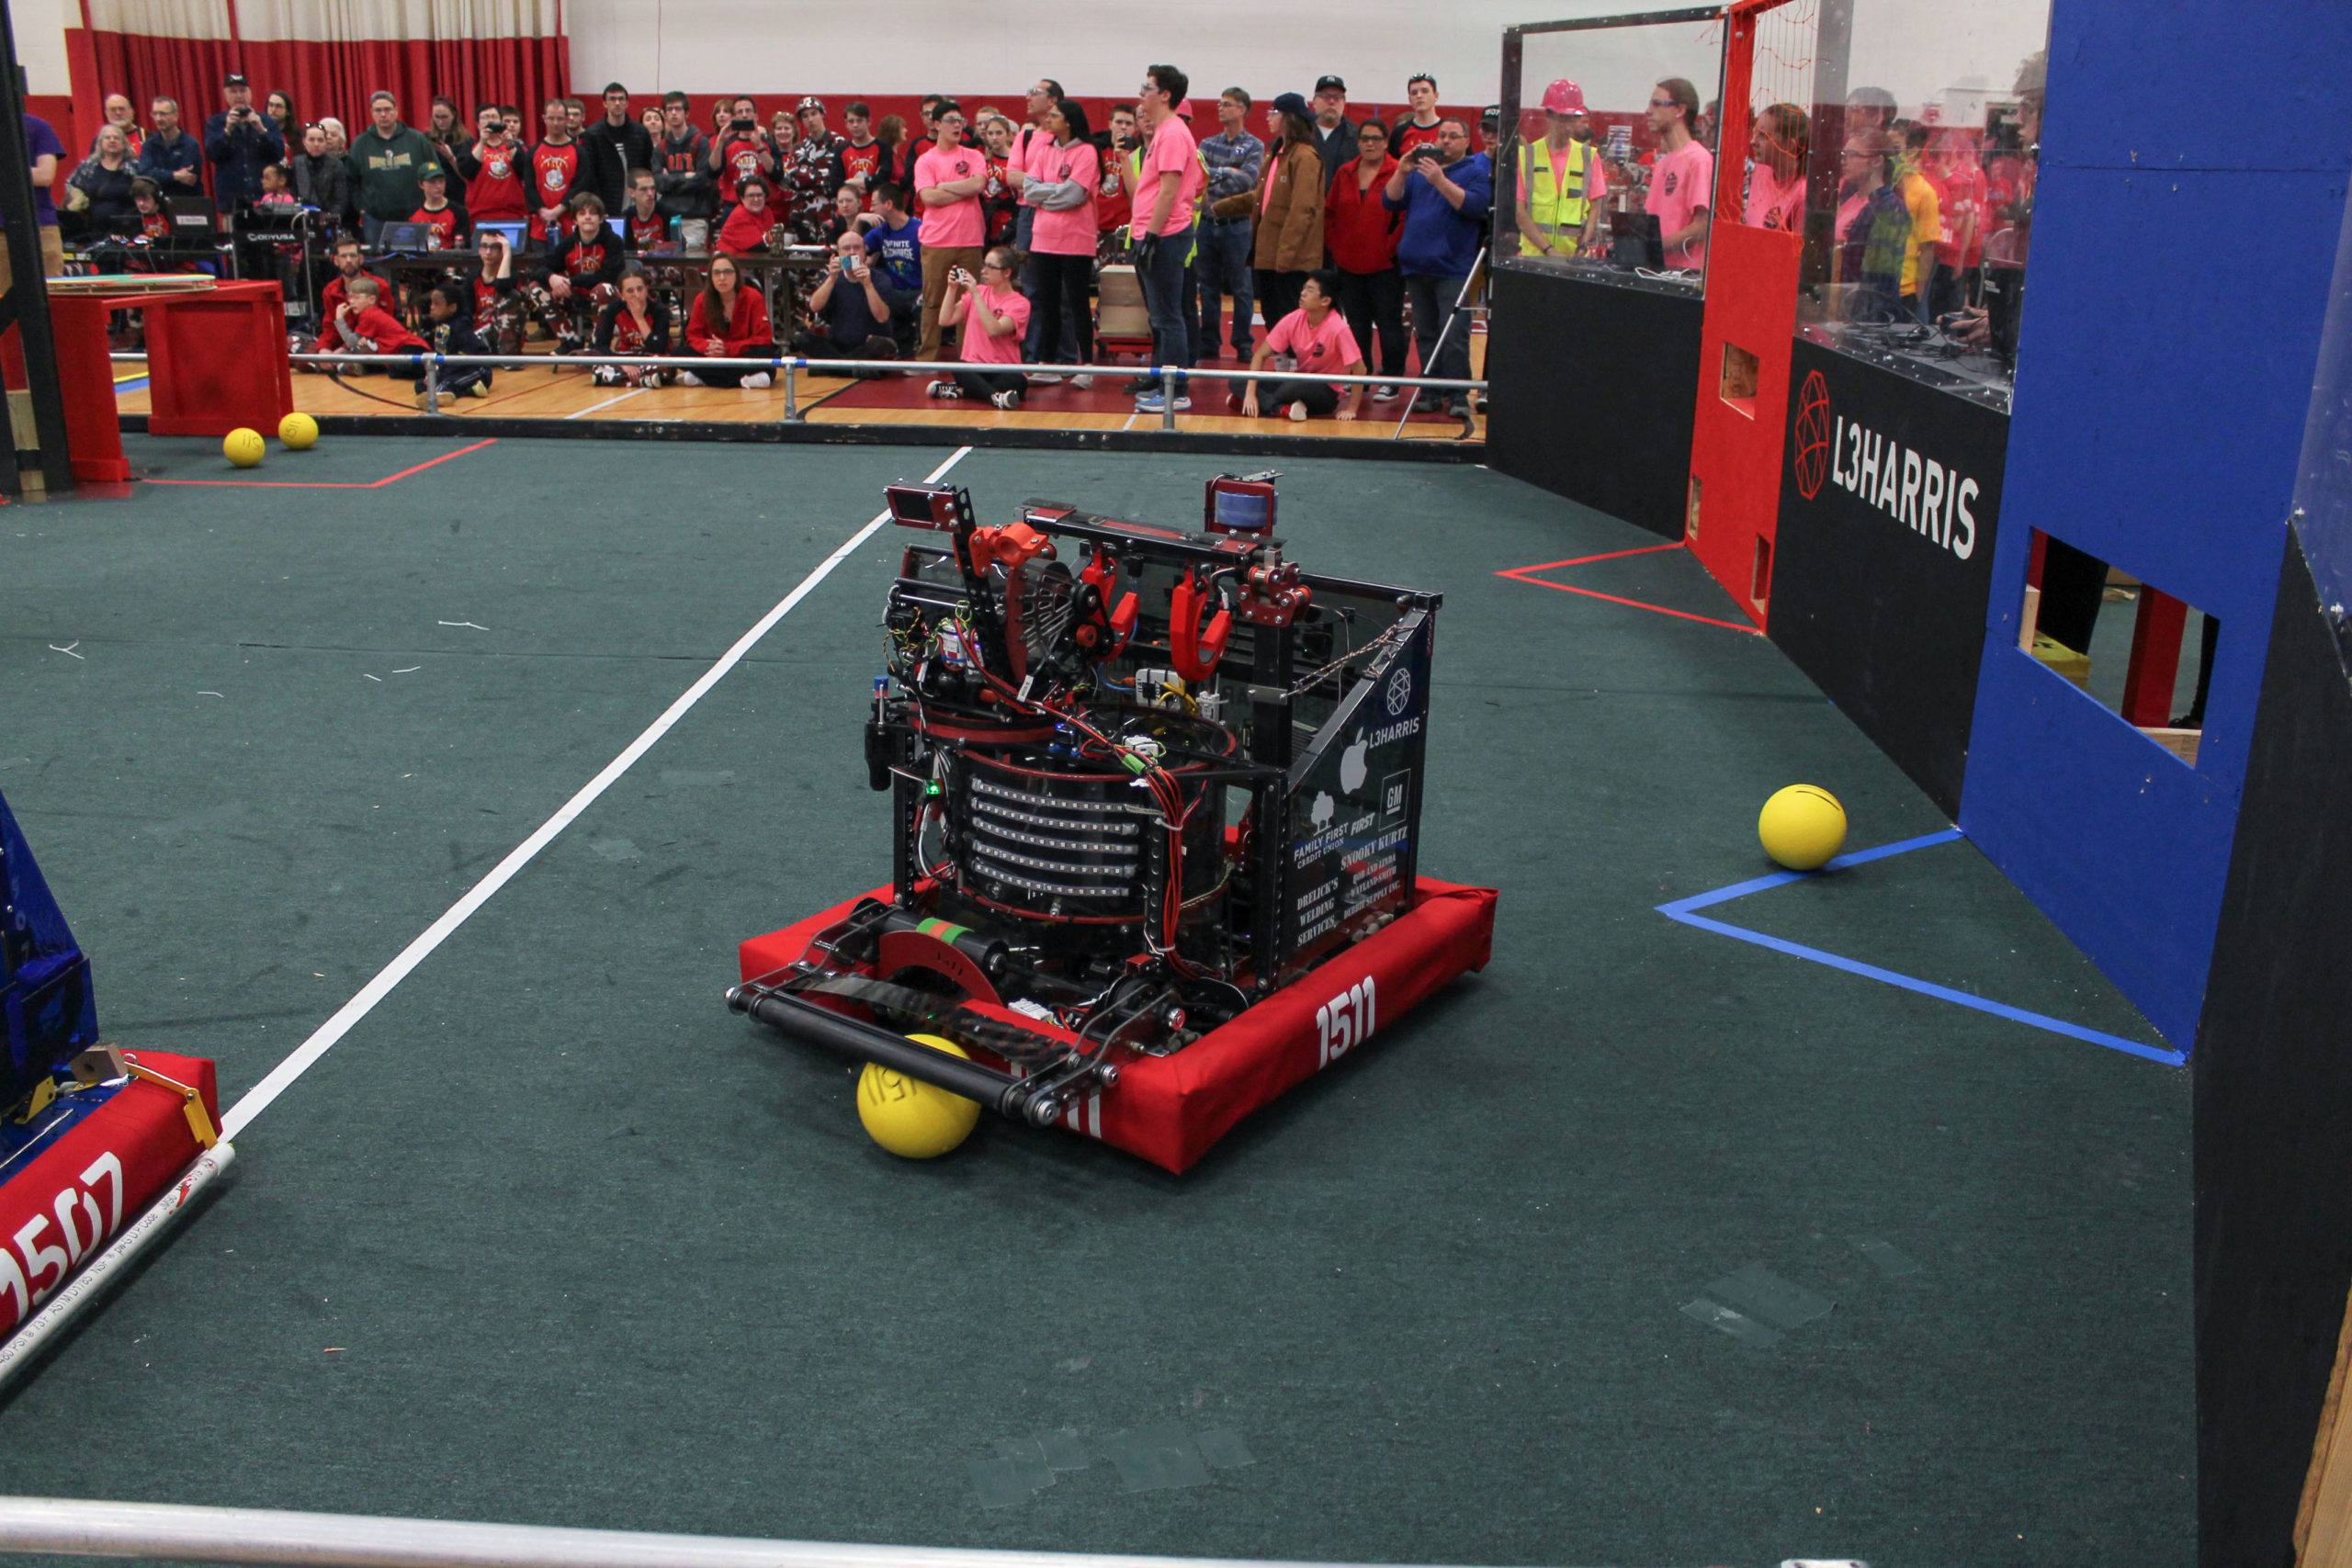 Photo of a robot running on a field with spectators watching at Rochester Rally